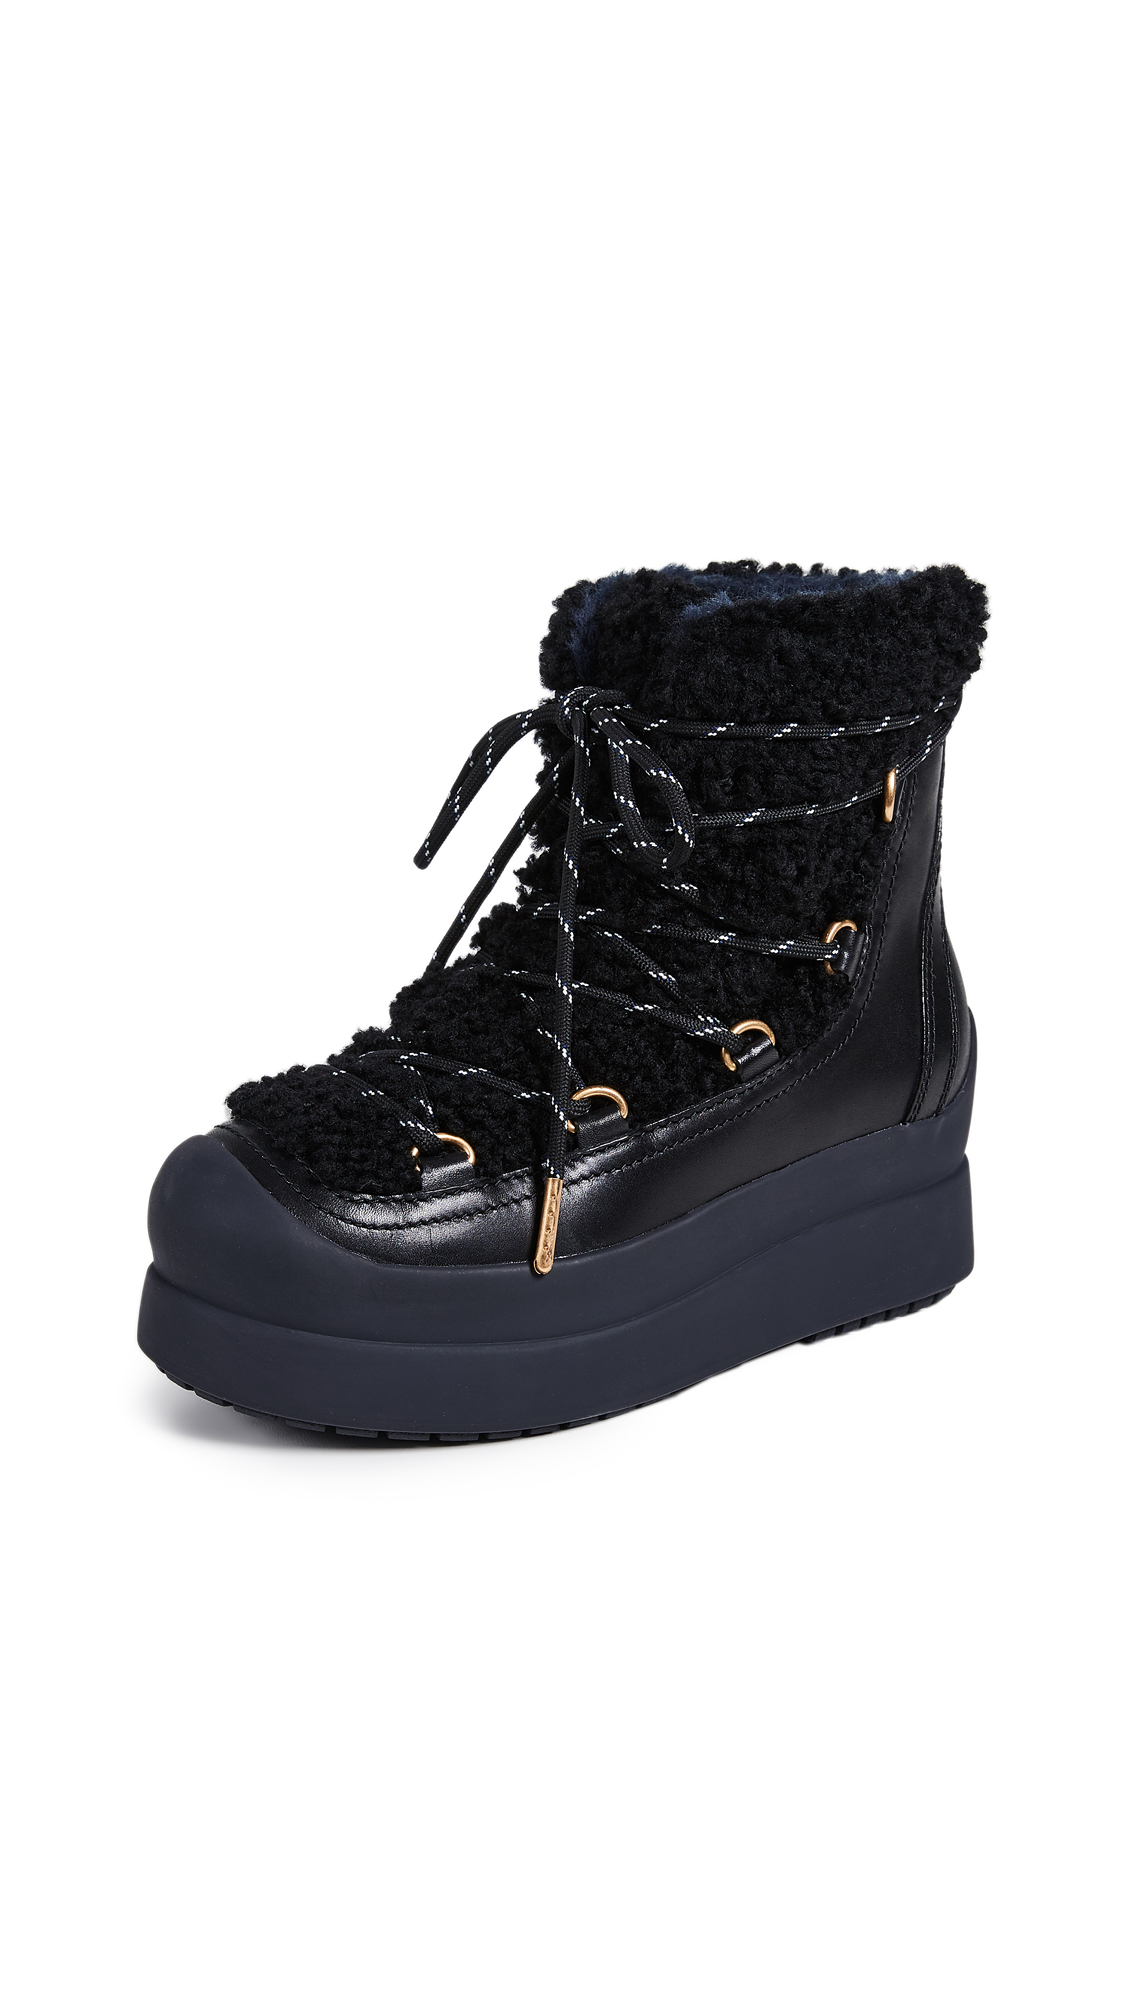 Tory Burch Courtney Shearling Boots - Perfect Black